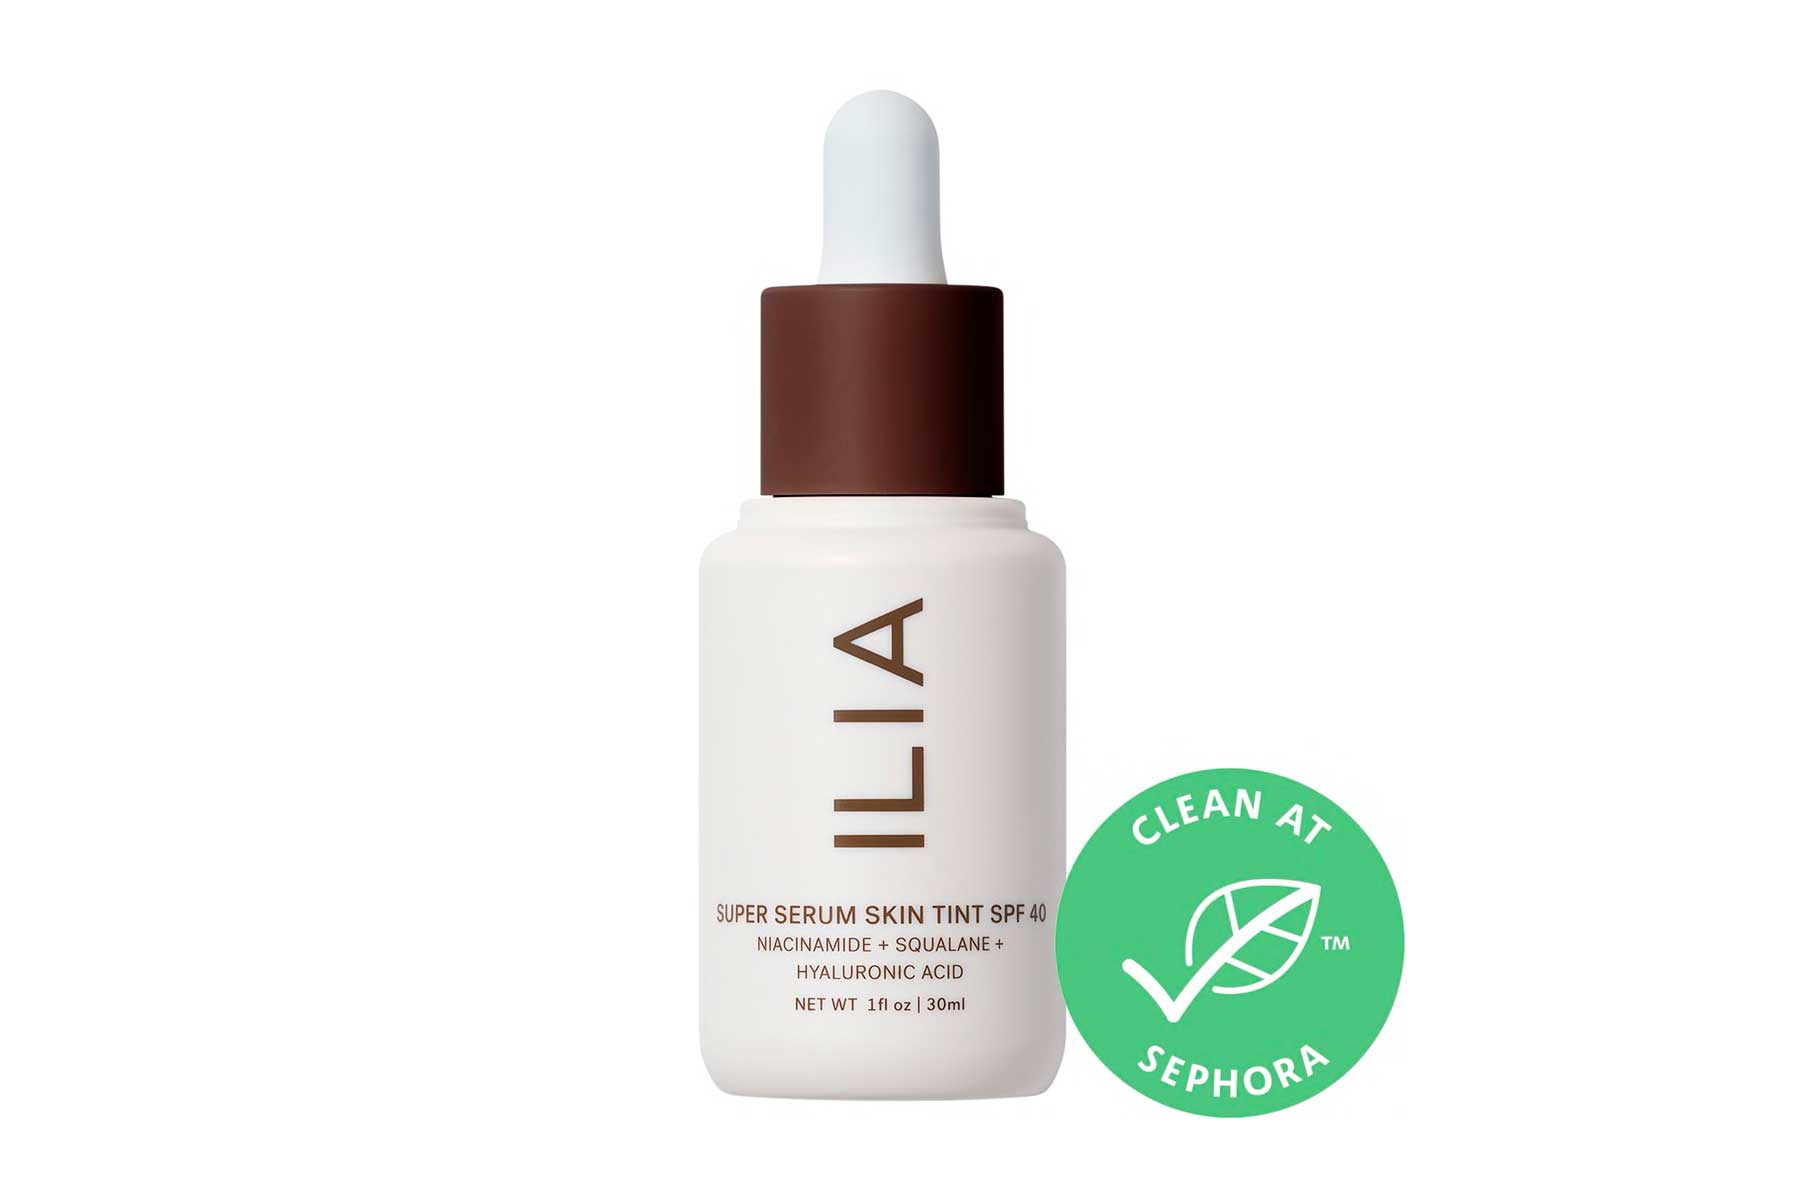 Product image of ILIA Super Serum Skin Tint SPF 40